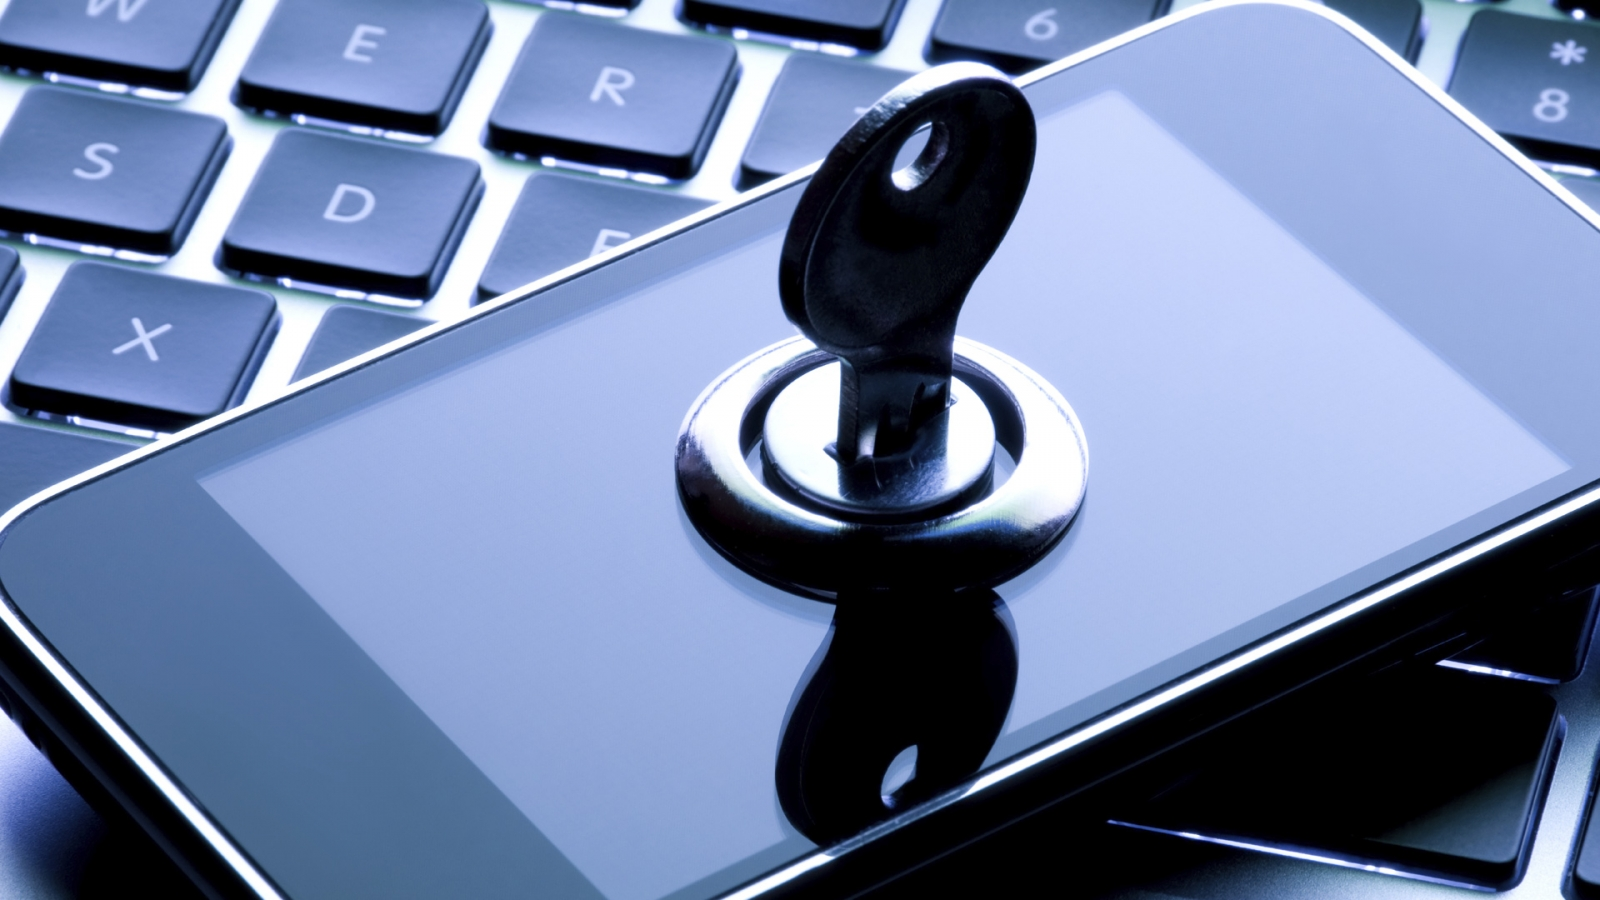 smartphone security kill switch